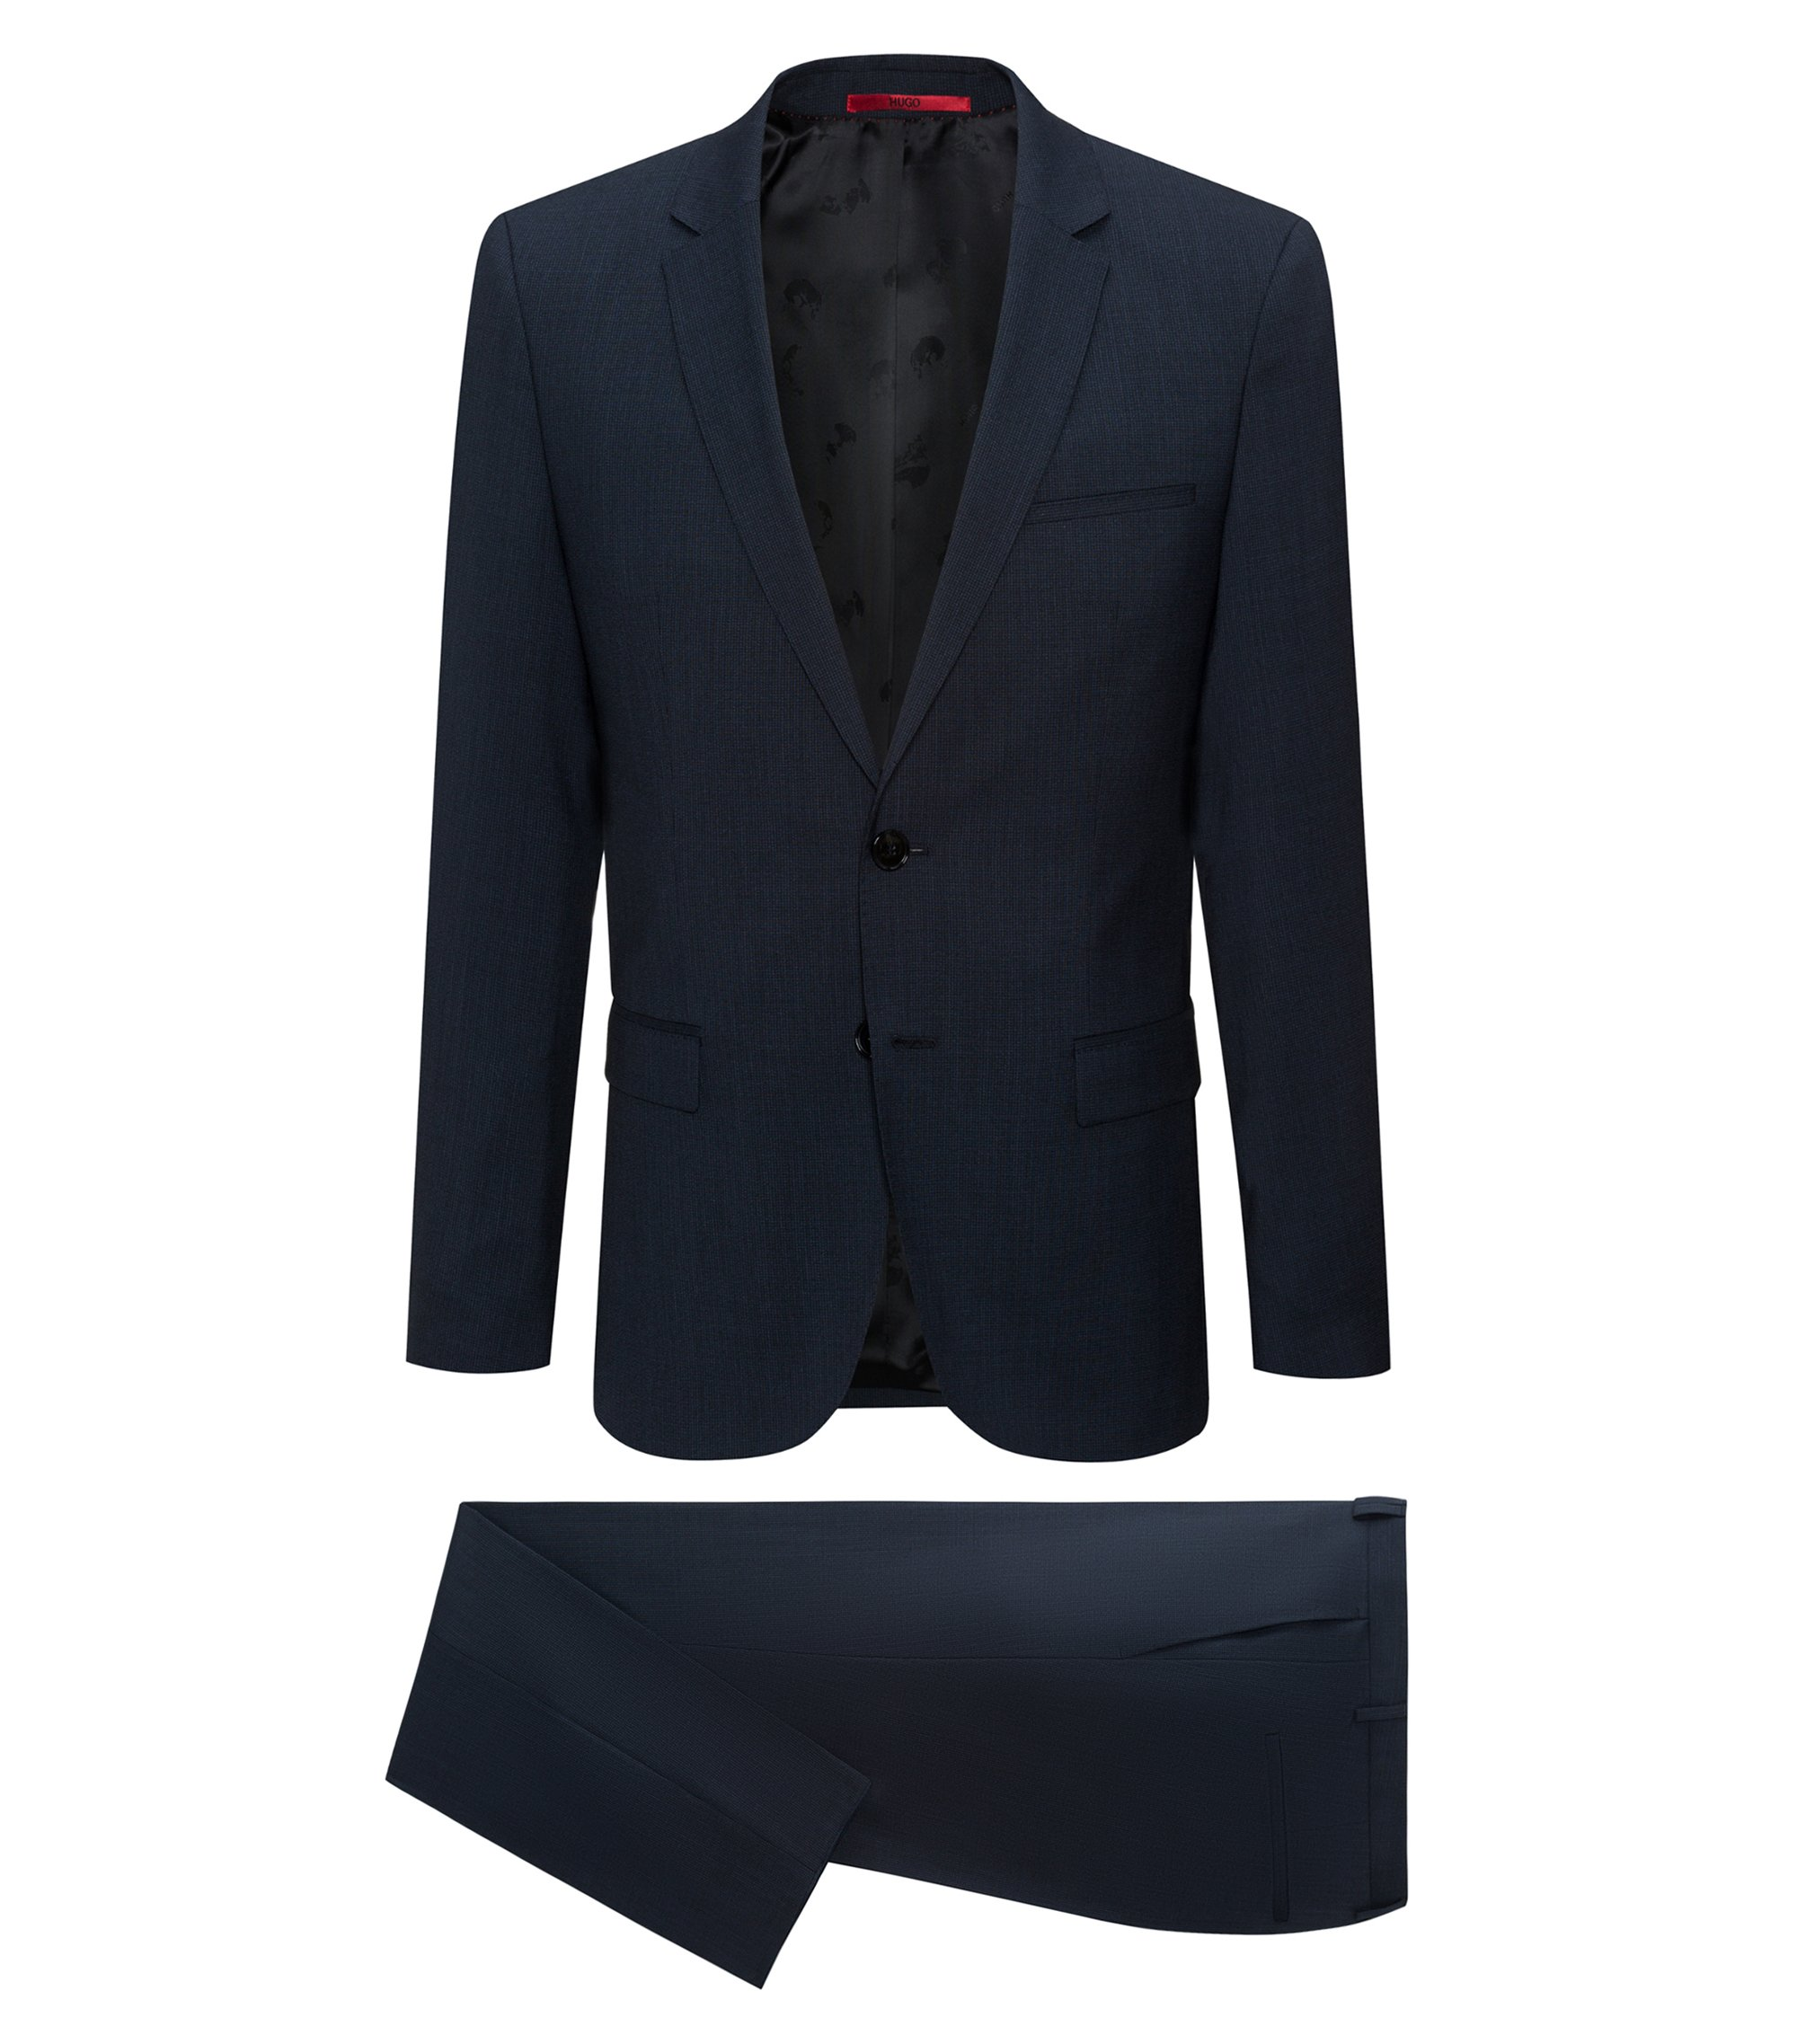 Italian Virgin Wool Suit, Extra-Slim Fit | Arti/Hesten, Dark Blue